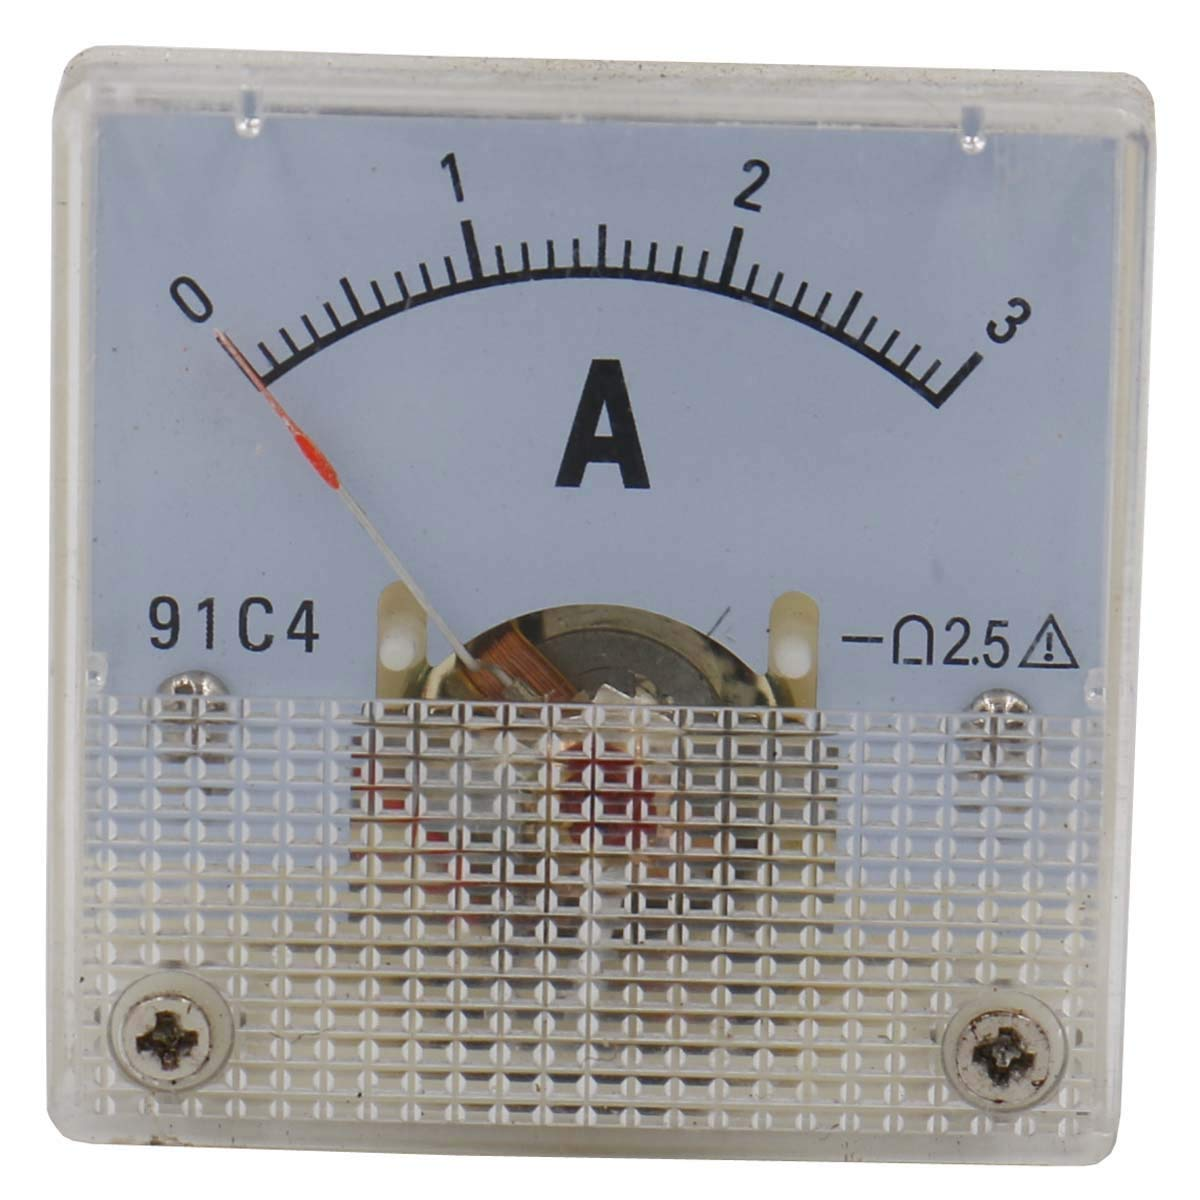 YXQ 0-20mA Analog Current Panel 91C4 Amp Ammeter Gauge Meter 2.5 Accuracy for Auto Circuit Measurement Tester